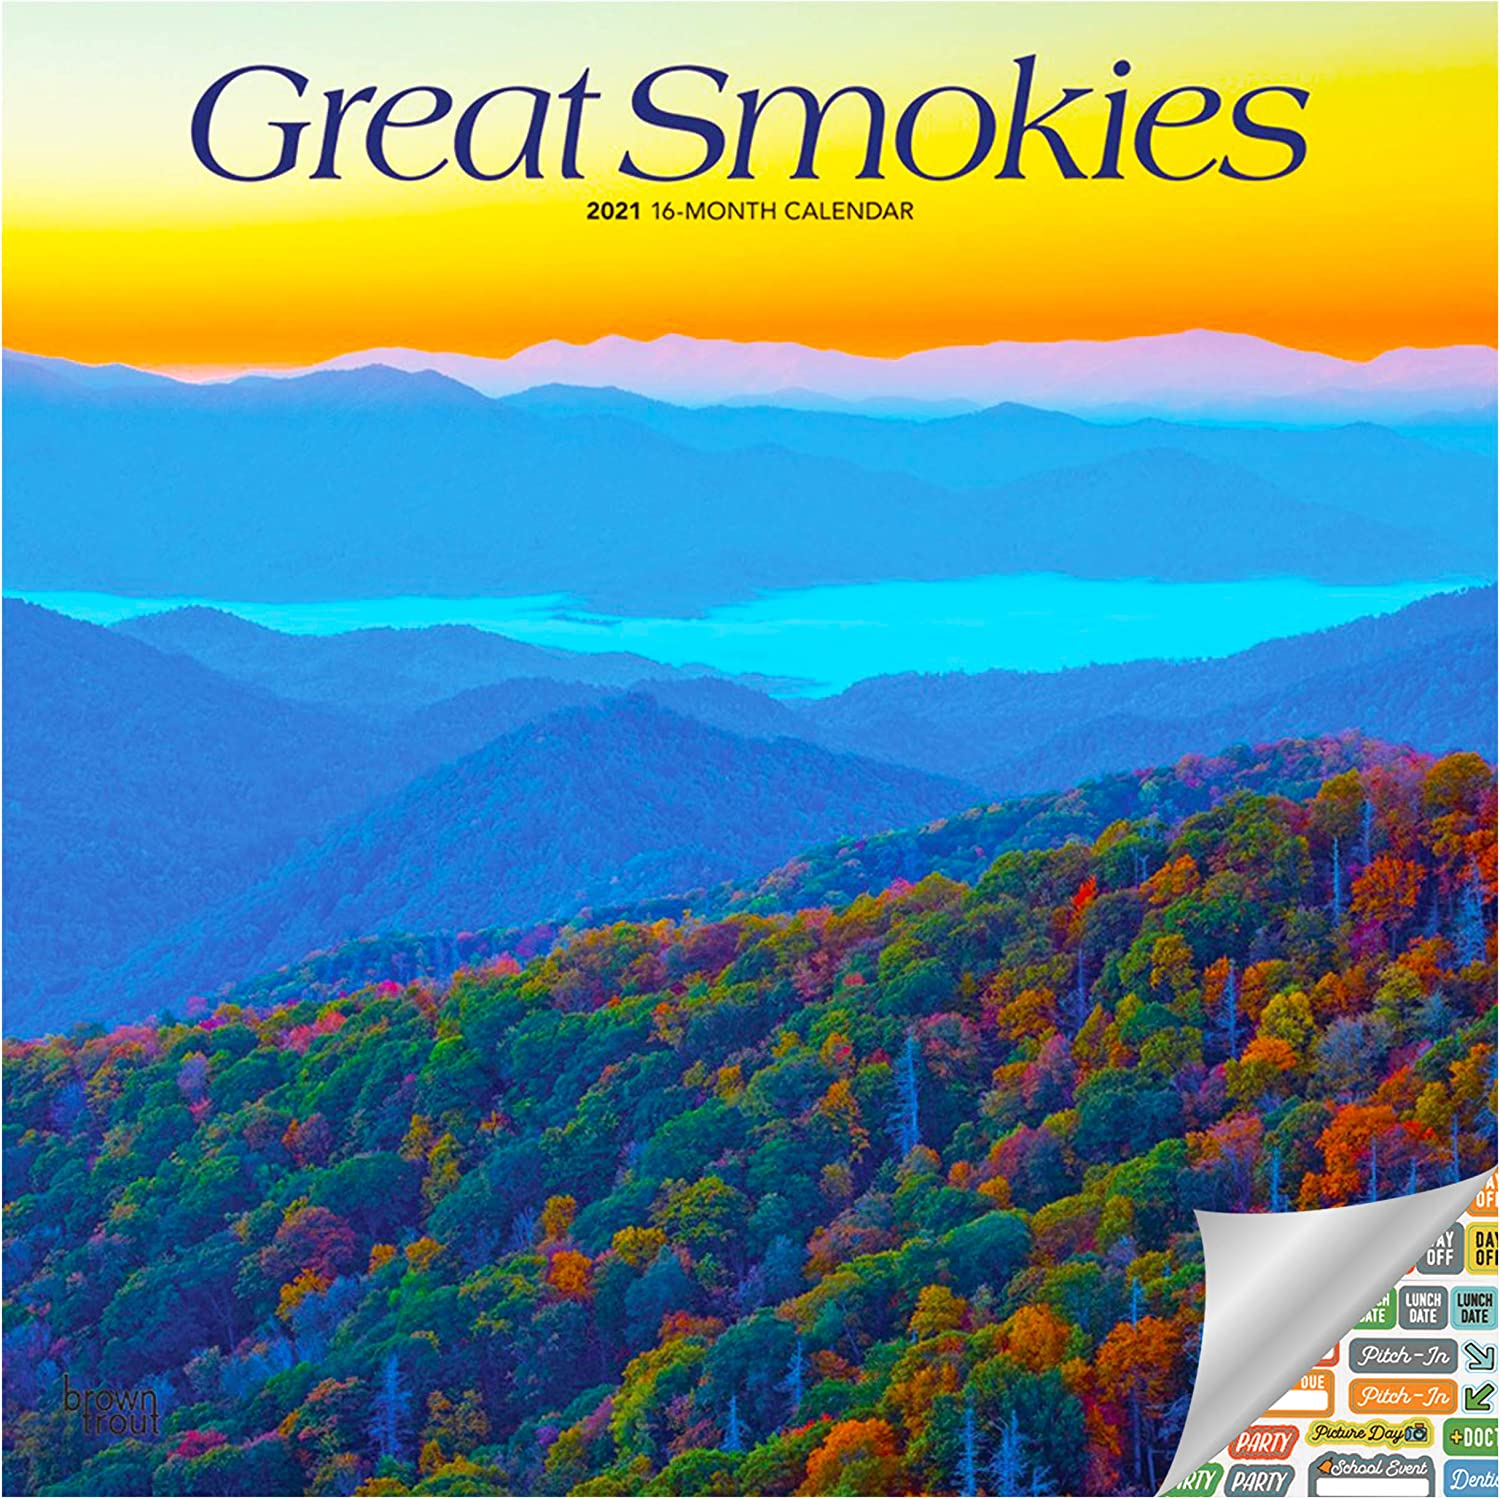 Great Smokies Calendar 2021 Bundle - Deluxe 2021 Great Smoky Mountains Wall Calendar with Over 100 Calendar Stickers (National Parks Gifts, Office Supplies)